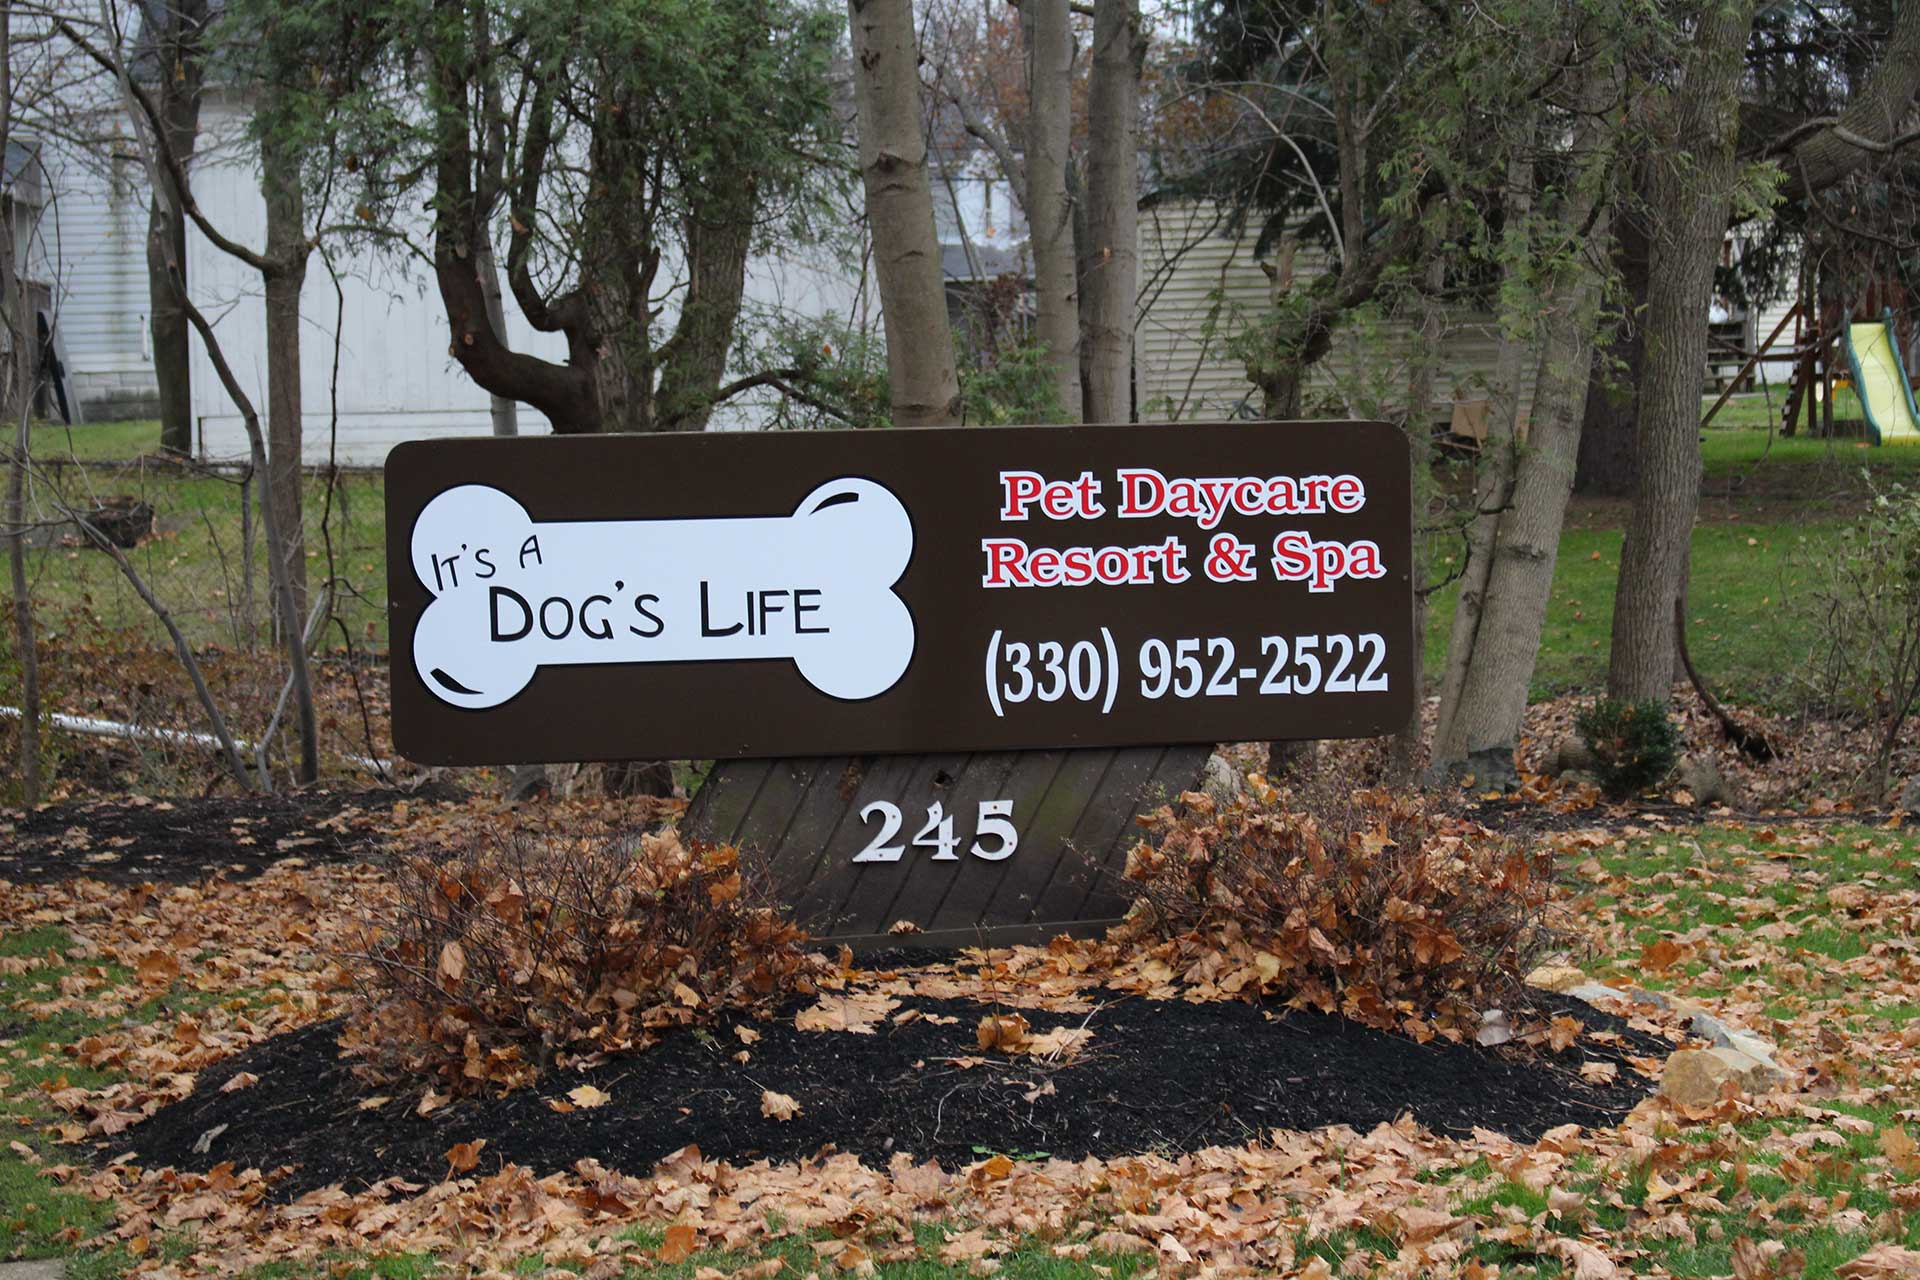 about-its-a-dogs-life-pet-daycare-resort-and-spa